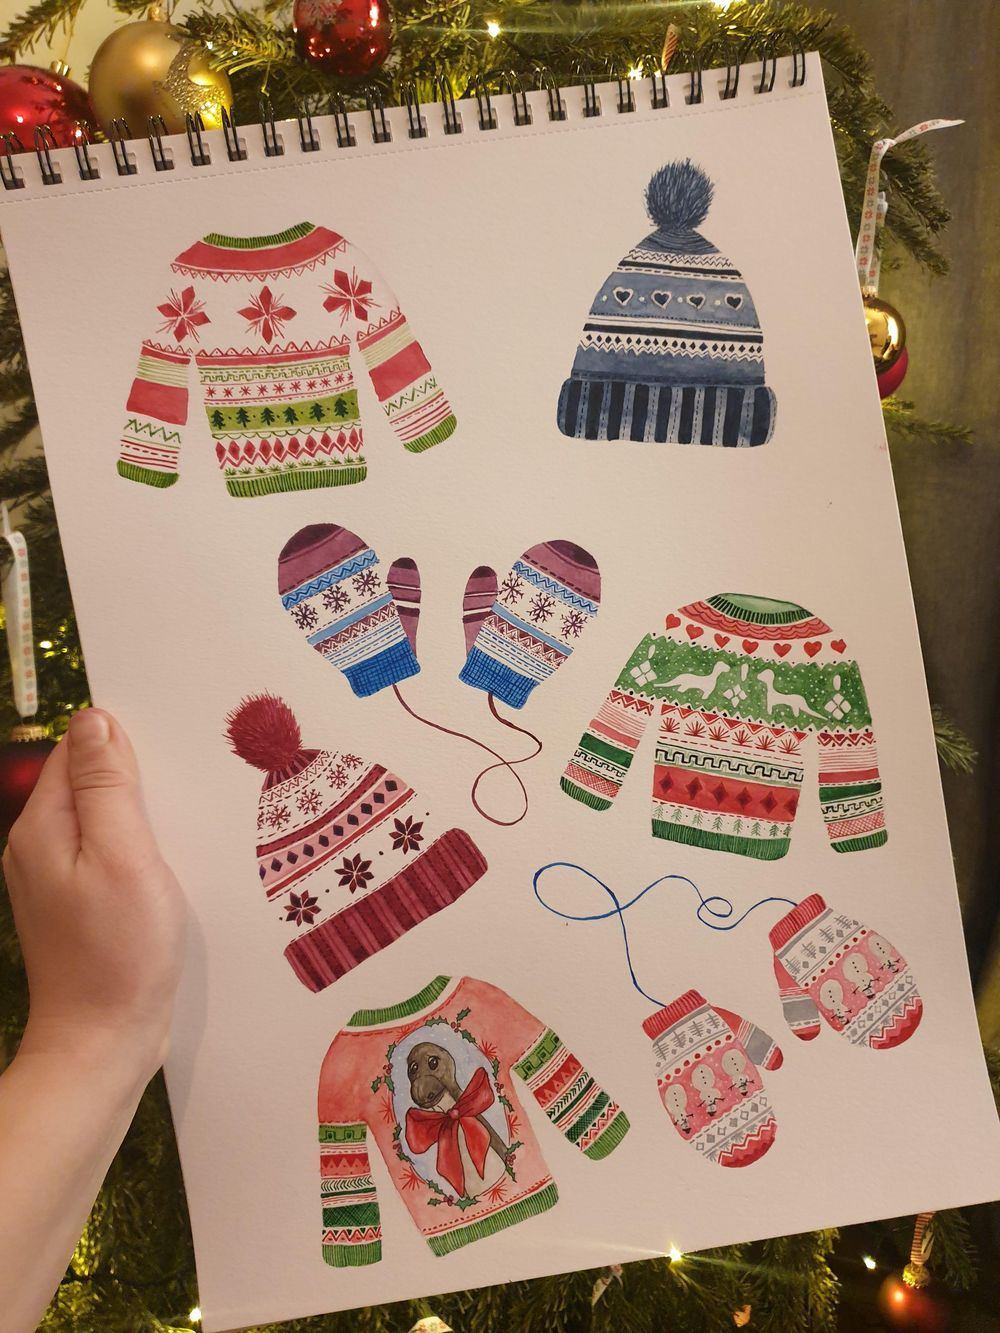 Cute Christmas patterns - image 1 - student project